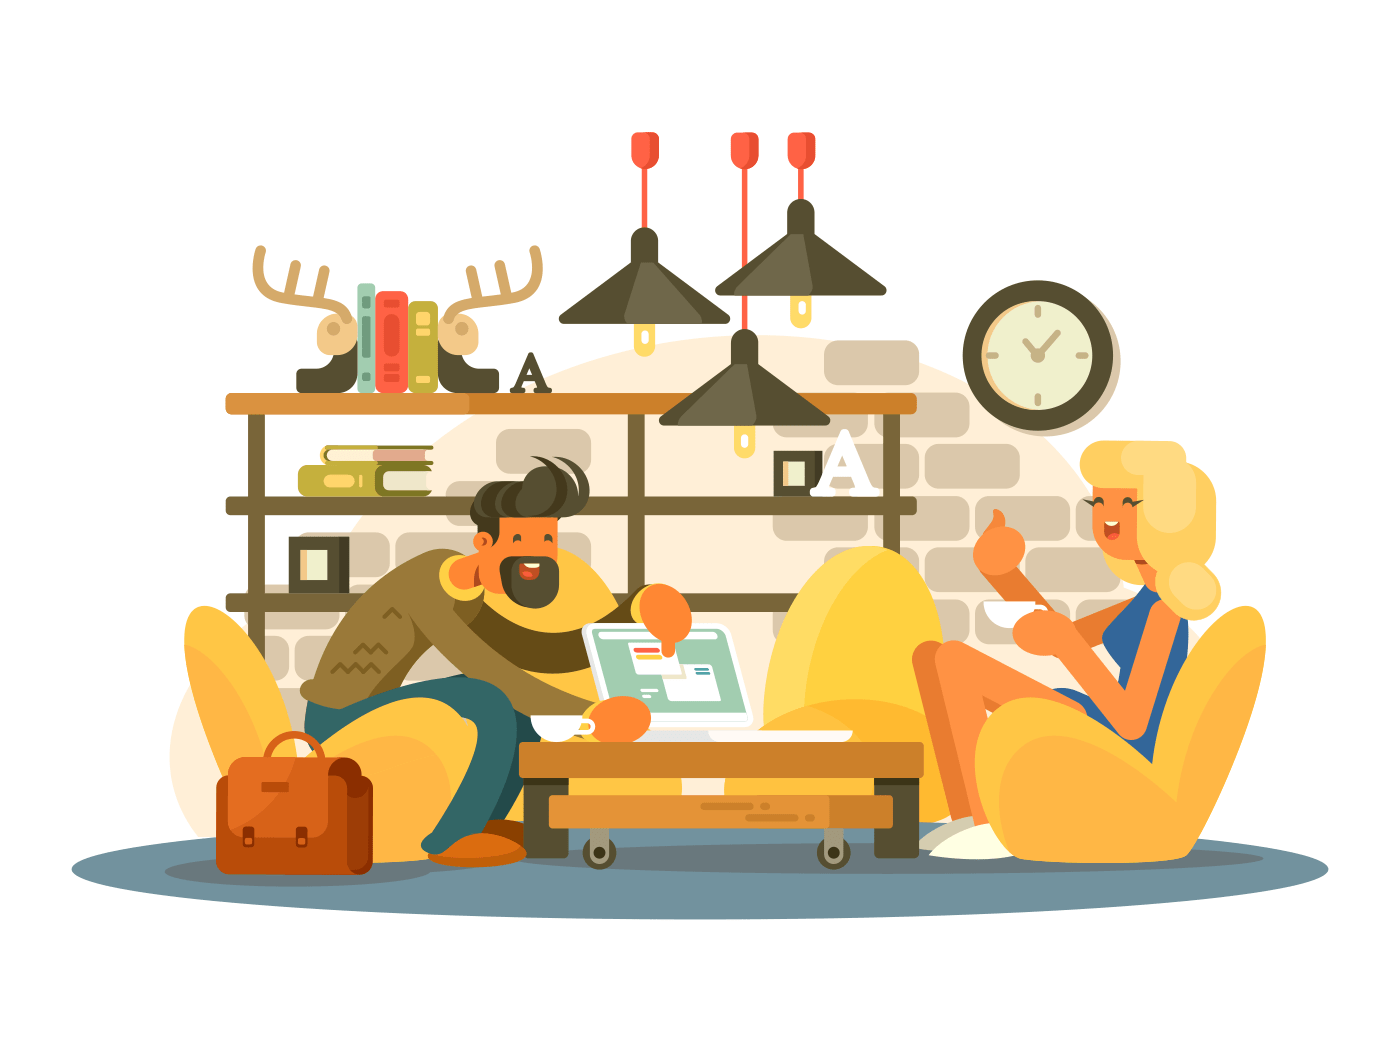 Coworking office work illustration